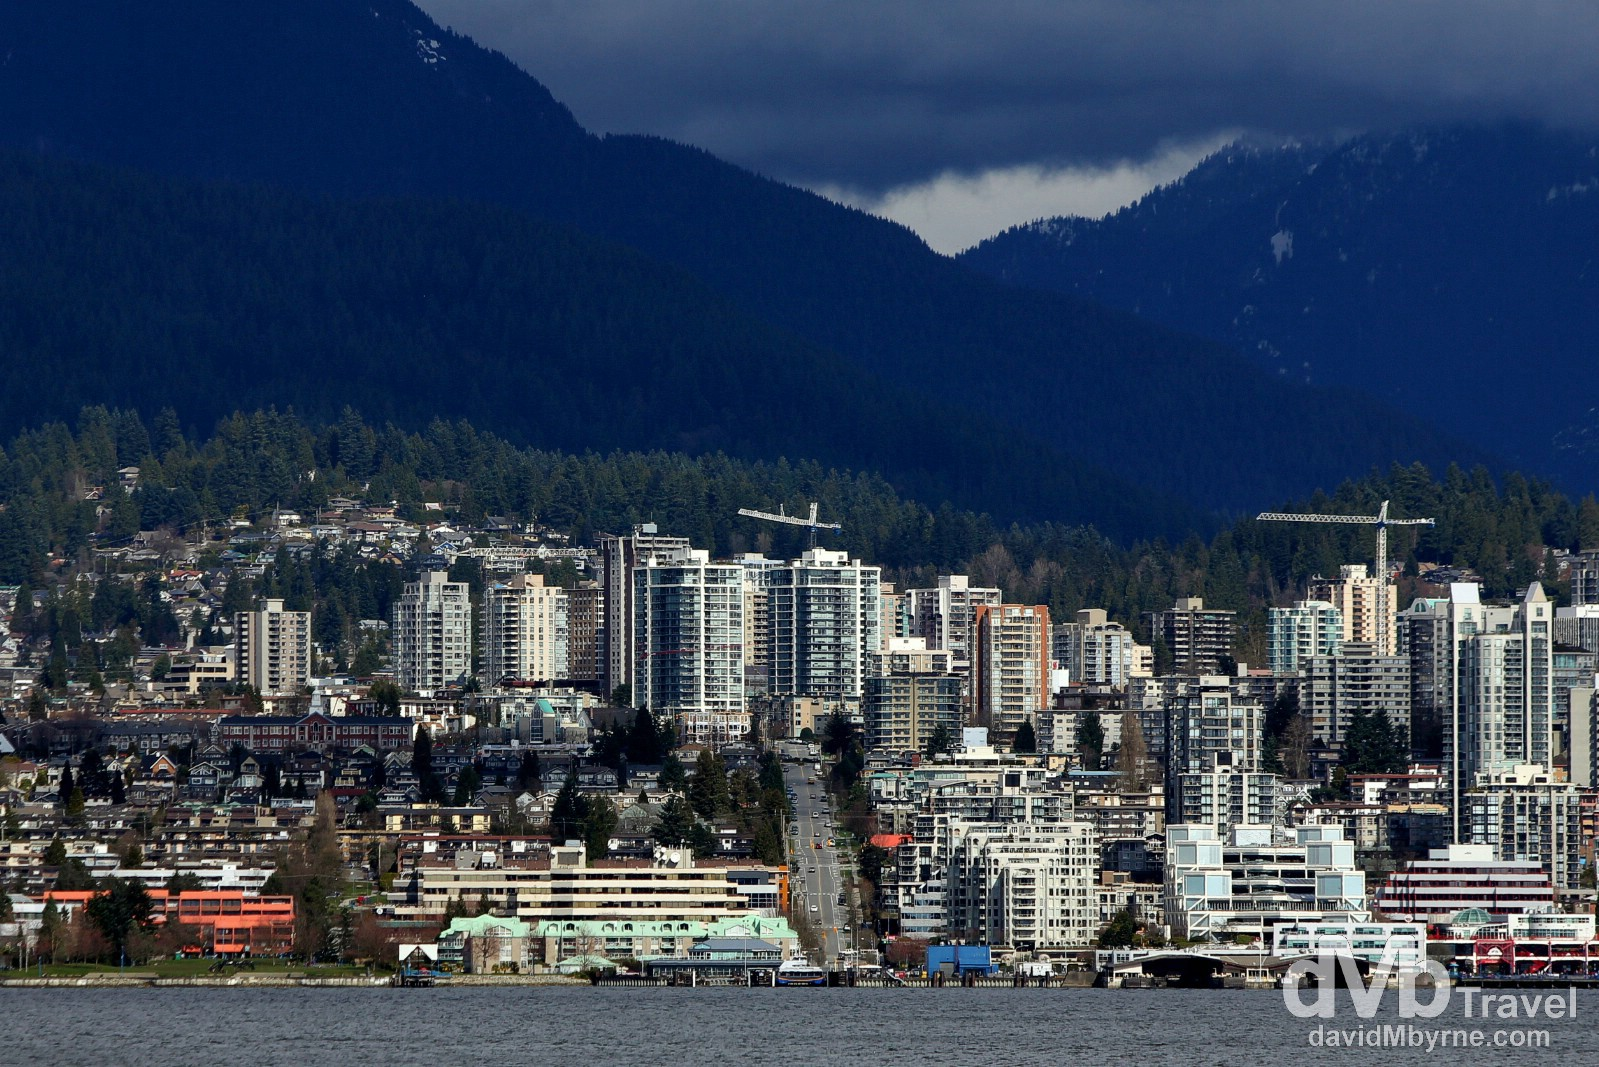 A picture of North Vancouver taken from the waters edge across Burrard Inlet in downtown Vancouver, British Columbia, Canada. March 20th 2013.